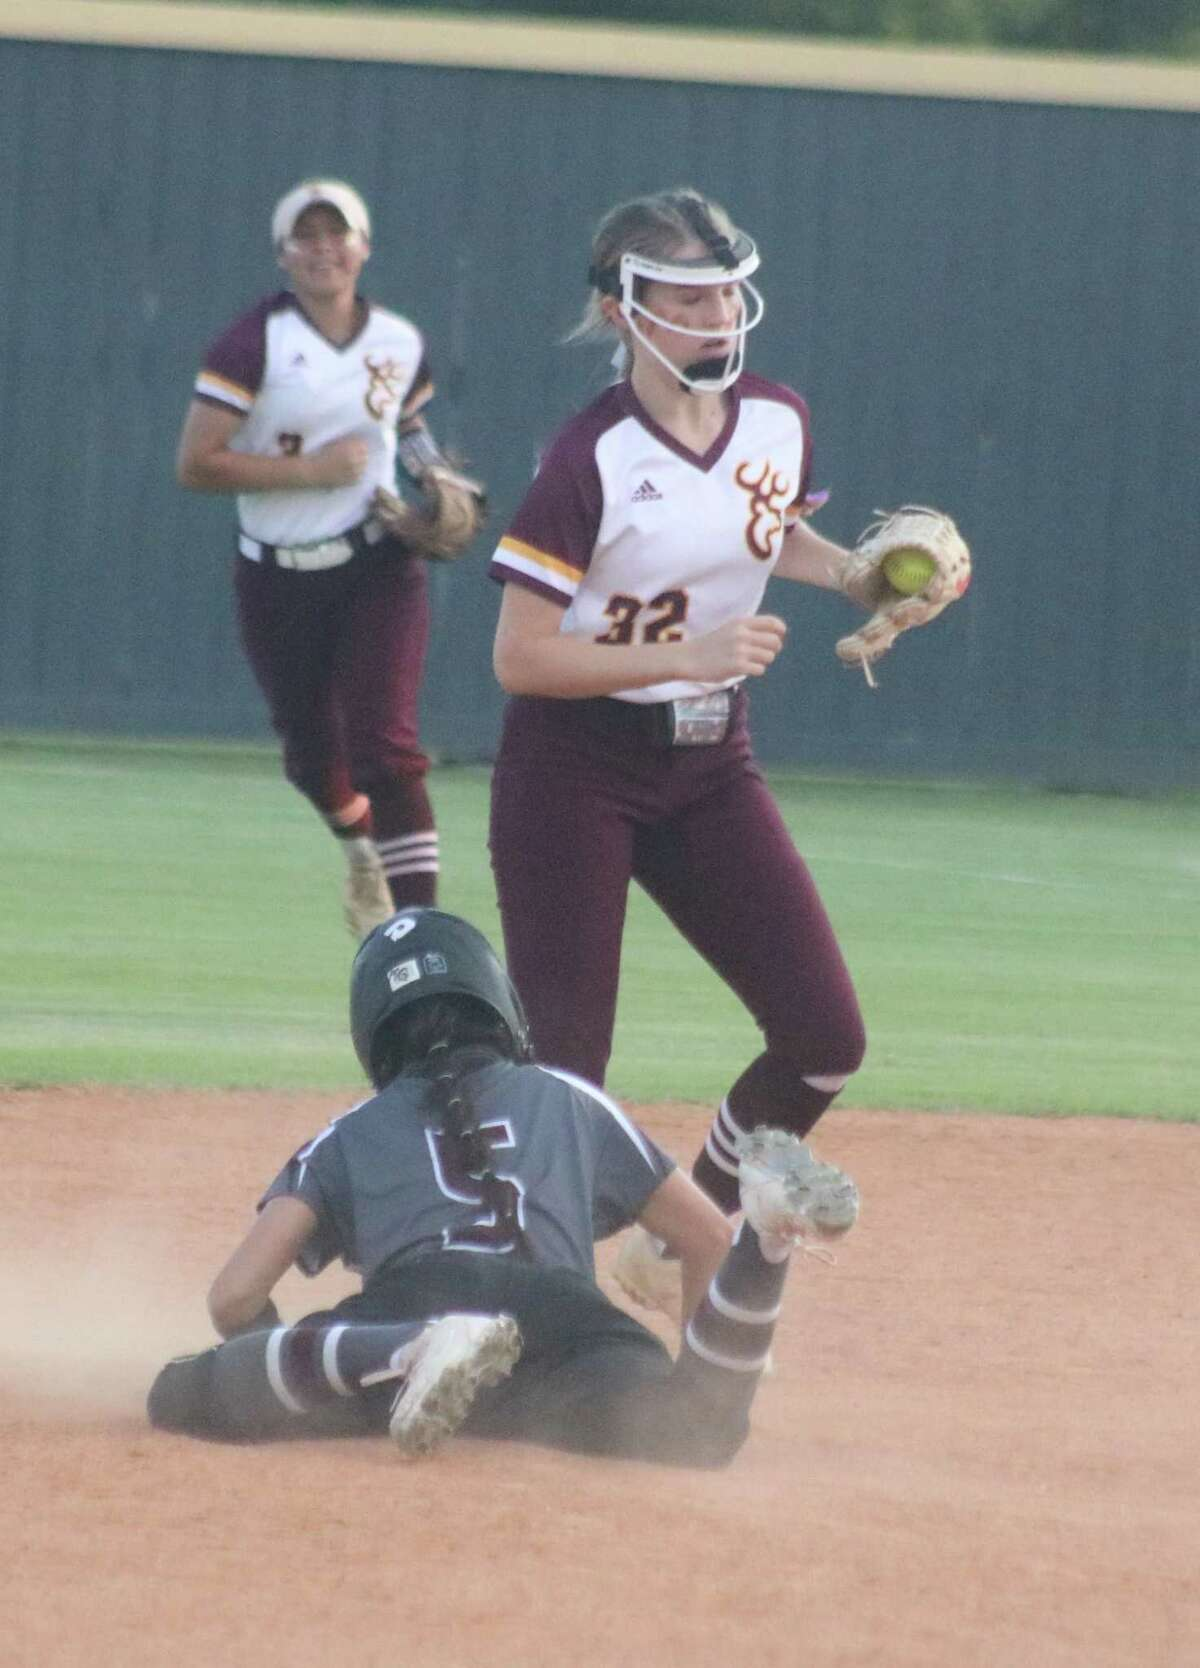 Deer Park shortstop Madison Bailey (32) completes a 9-6 double play in the fourth as the team took advantage of a Lady Oiler mental lapse on the basepaths. Linda Gobea started the twin-killing with a catch in right field.